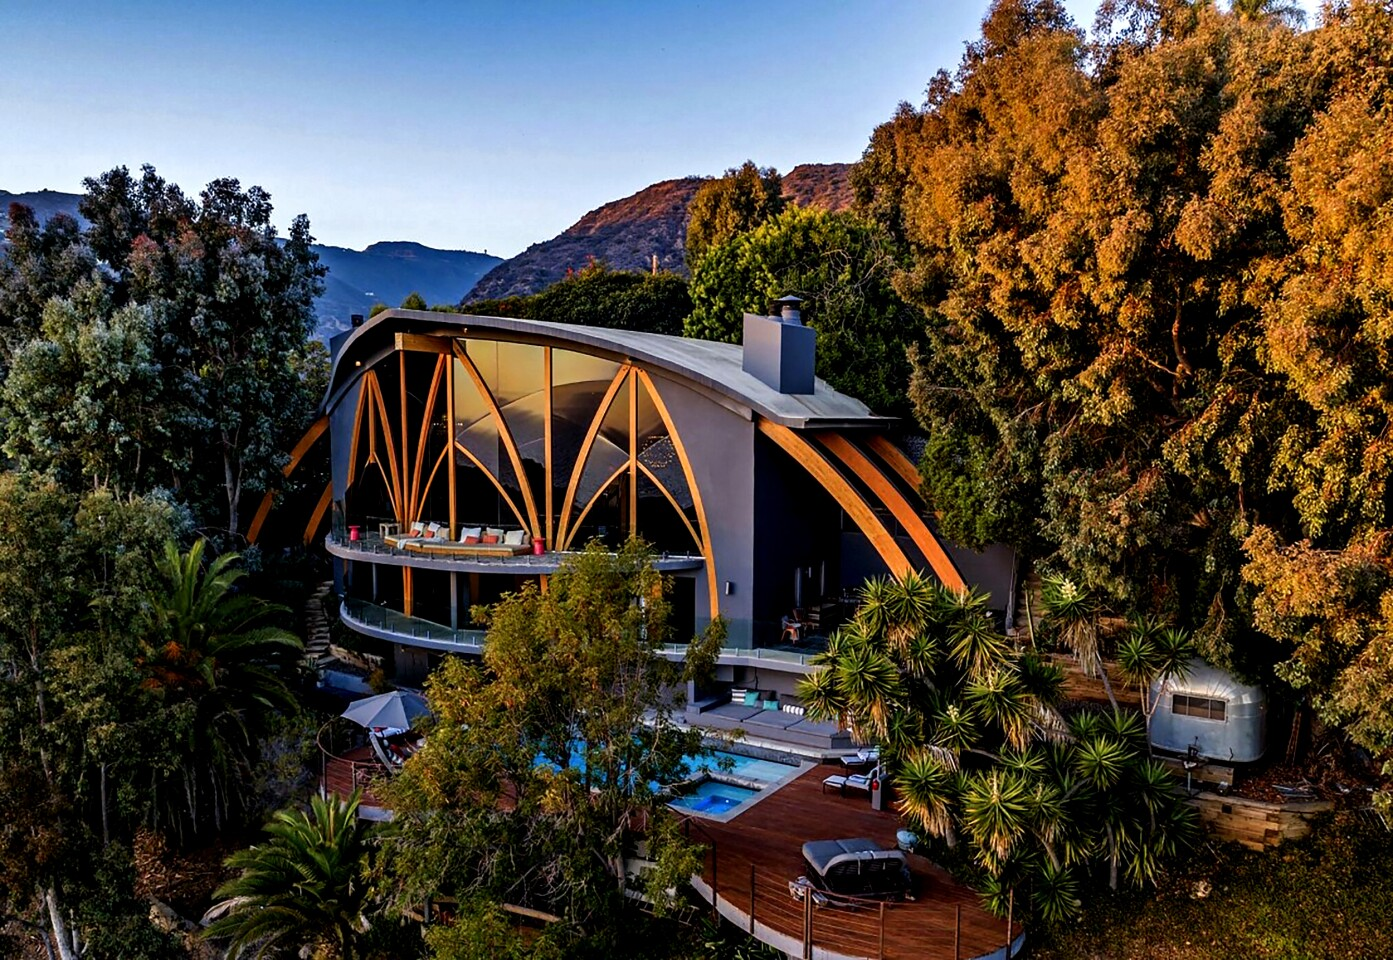 Called Ravenseye, the striking home overlooking Las Flores Beach in Malibu was built for Jerome Lawrence after the playwright's previous home was destroyed by wildfire. Harry Gesner handled the design of the three-bedroom home, which features expanses of glass, gothic arches and mosaic stone floors. The noted Malibu architect would return to remodel the home for a later owner. Listed for $14 million, the modernist residence takes in commanding ocean views. Also on the grounds are a swimming pool and a vintage Airstream trailer that serves as a guesthouse.